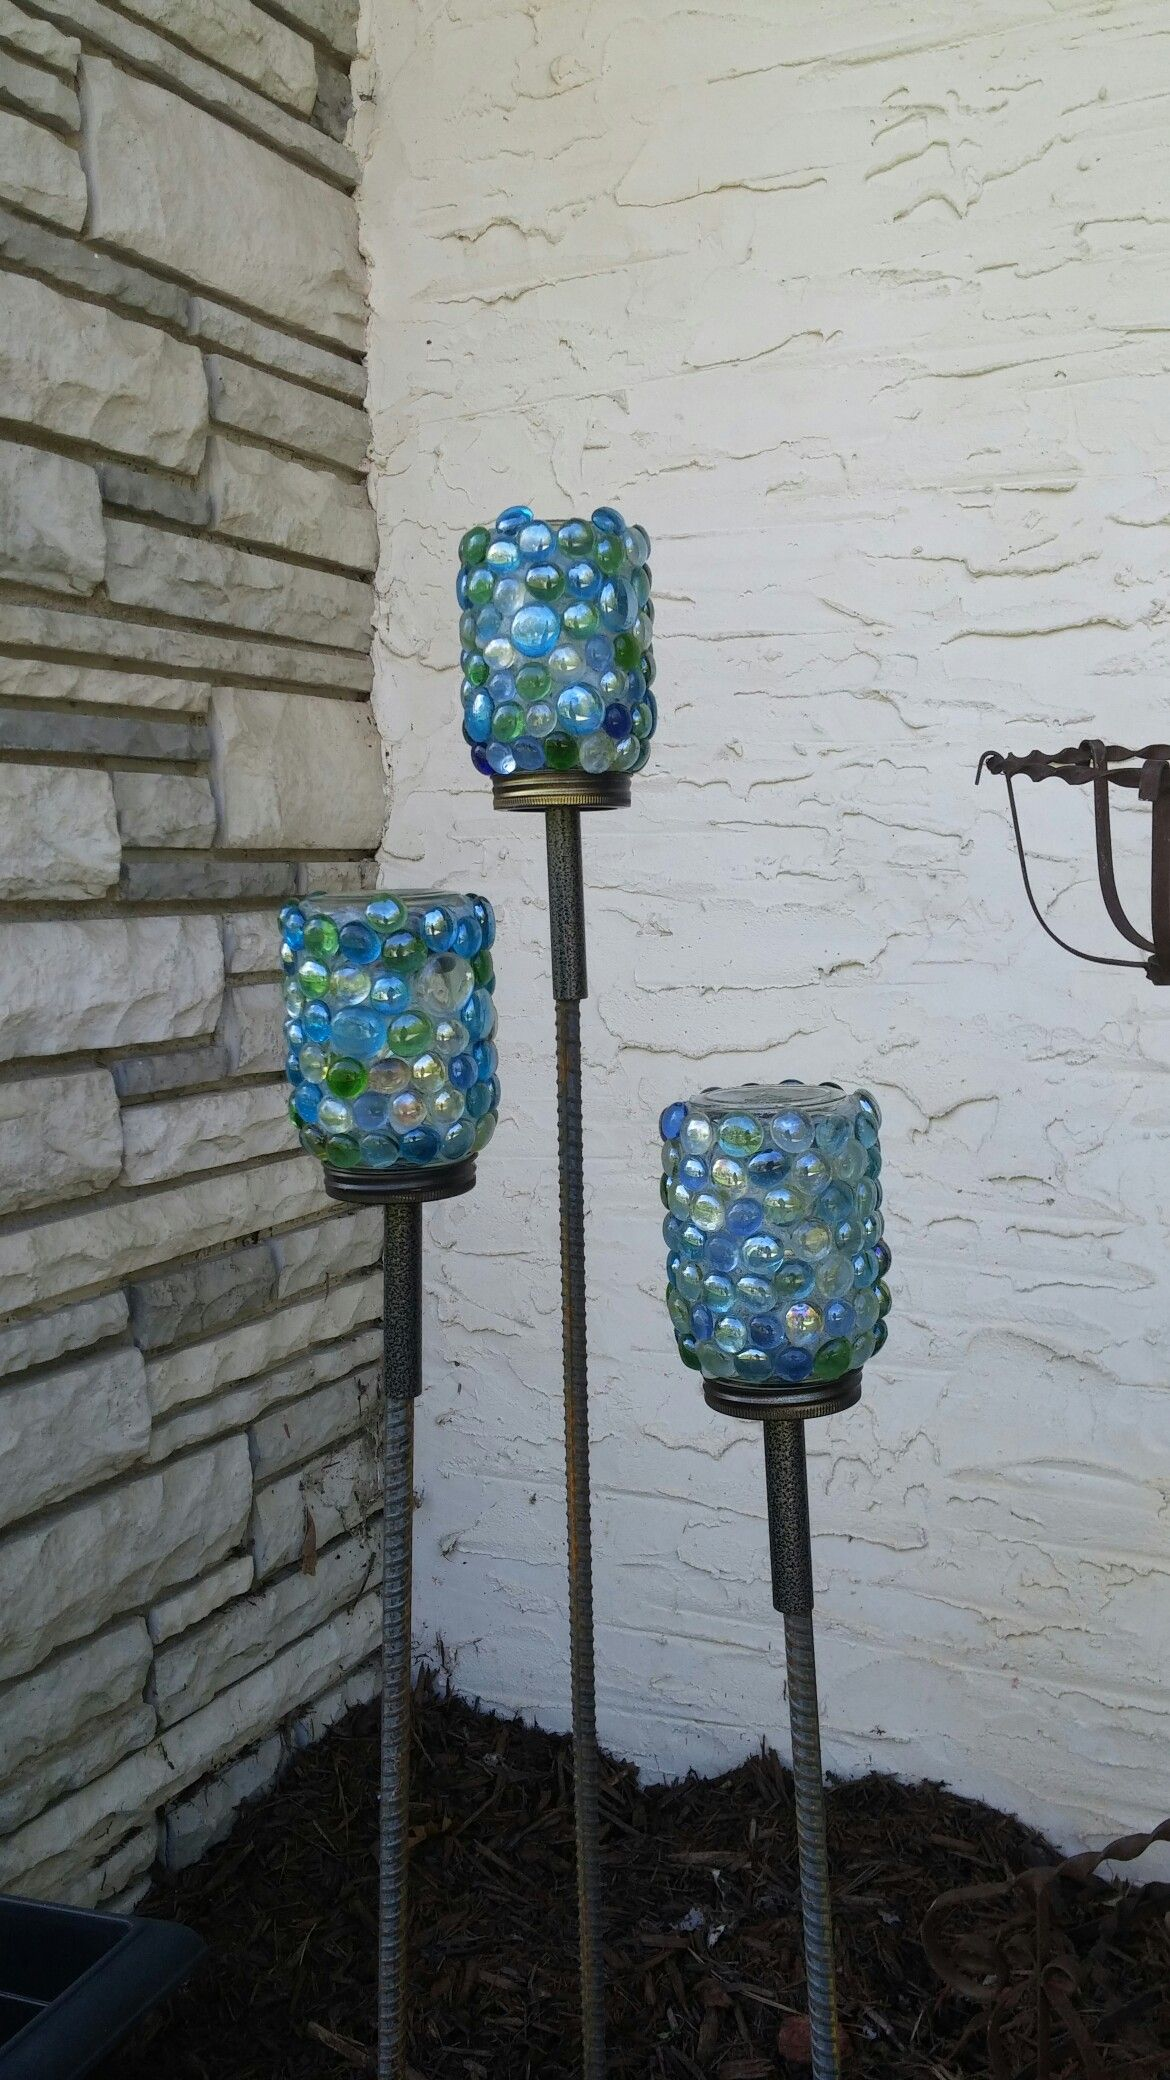 Flat glass marbles crafts - Mason Jar Solar Lights Decorated With Flat Glass Marbles